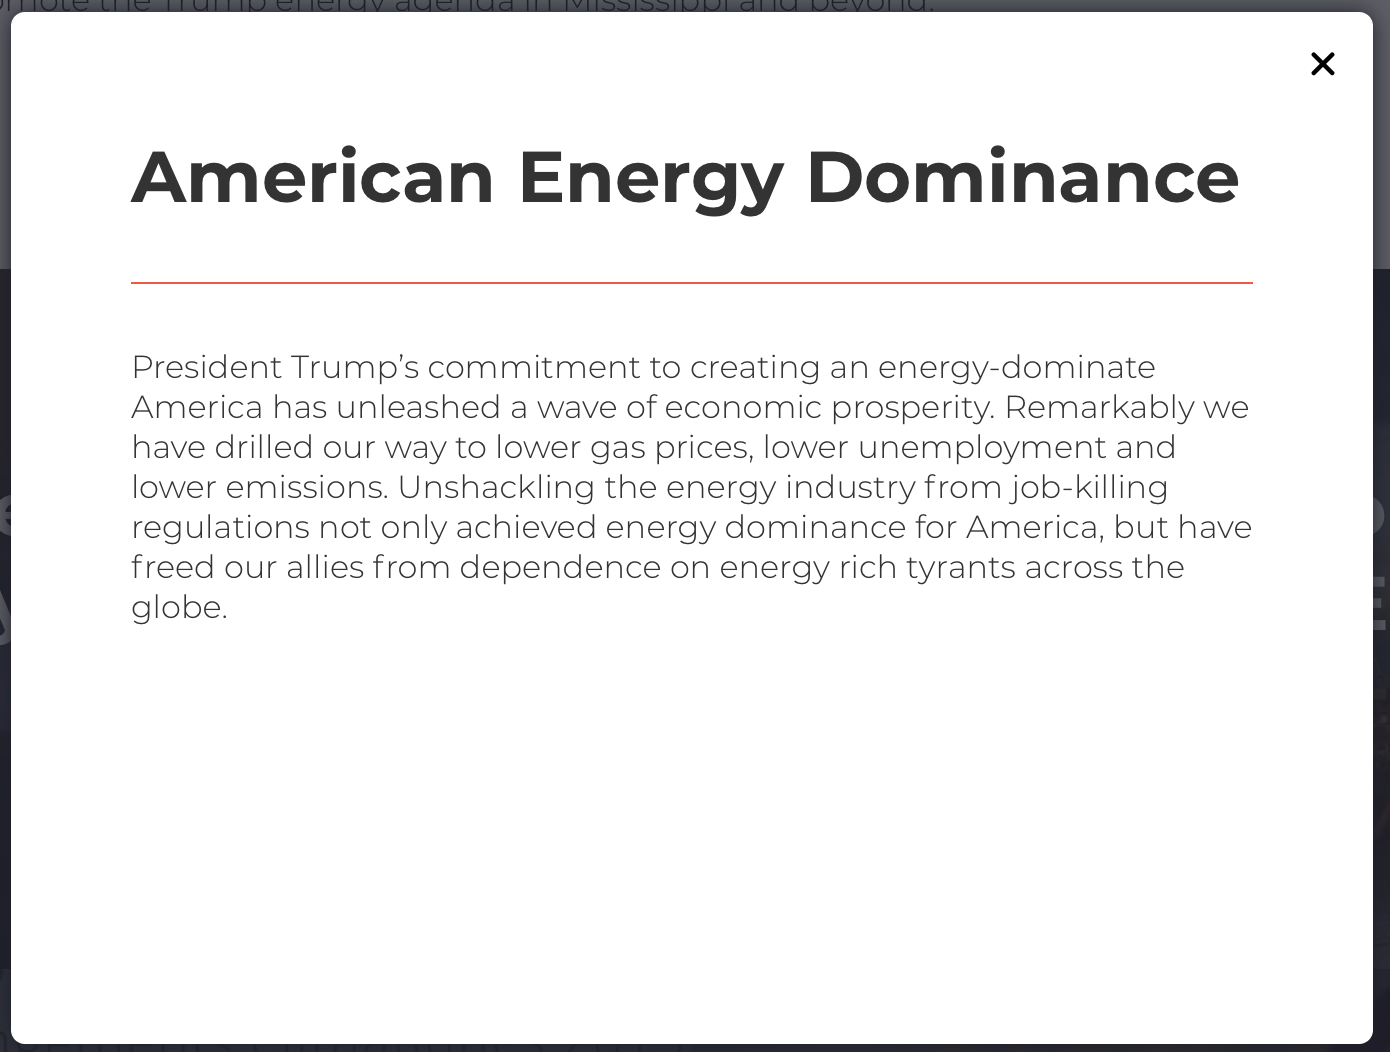 source: The Energy 45 Fund, www.energy45.org